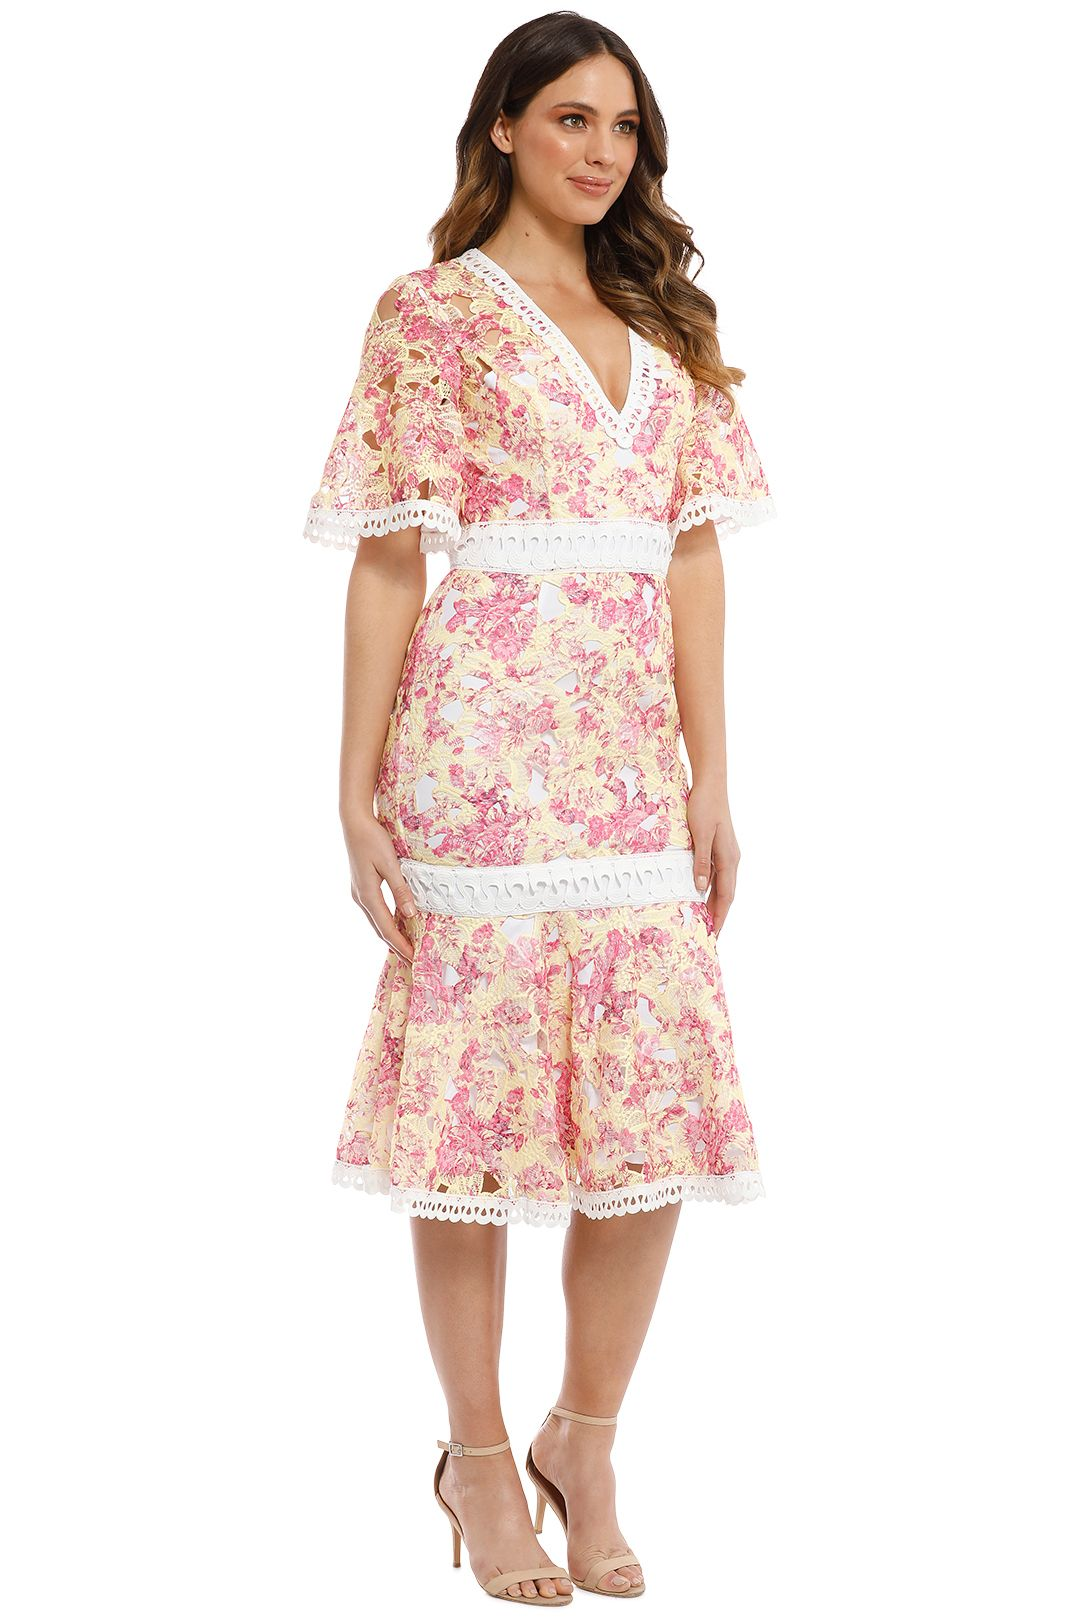 Talulah - Vienna Midi Dress - Wallpaper Rose - Side